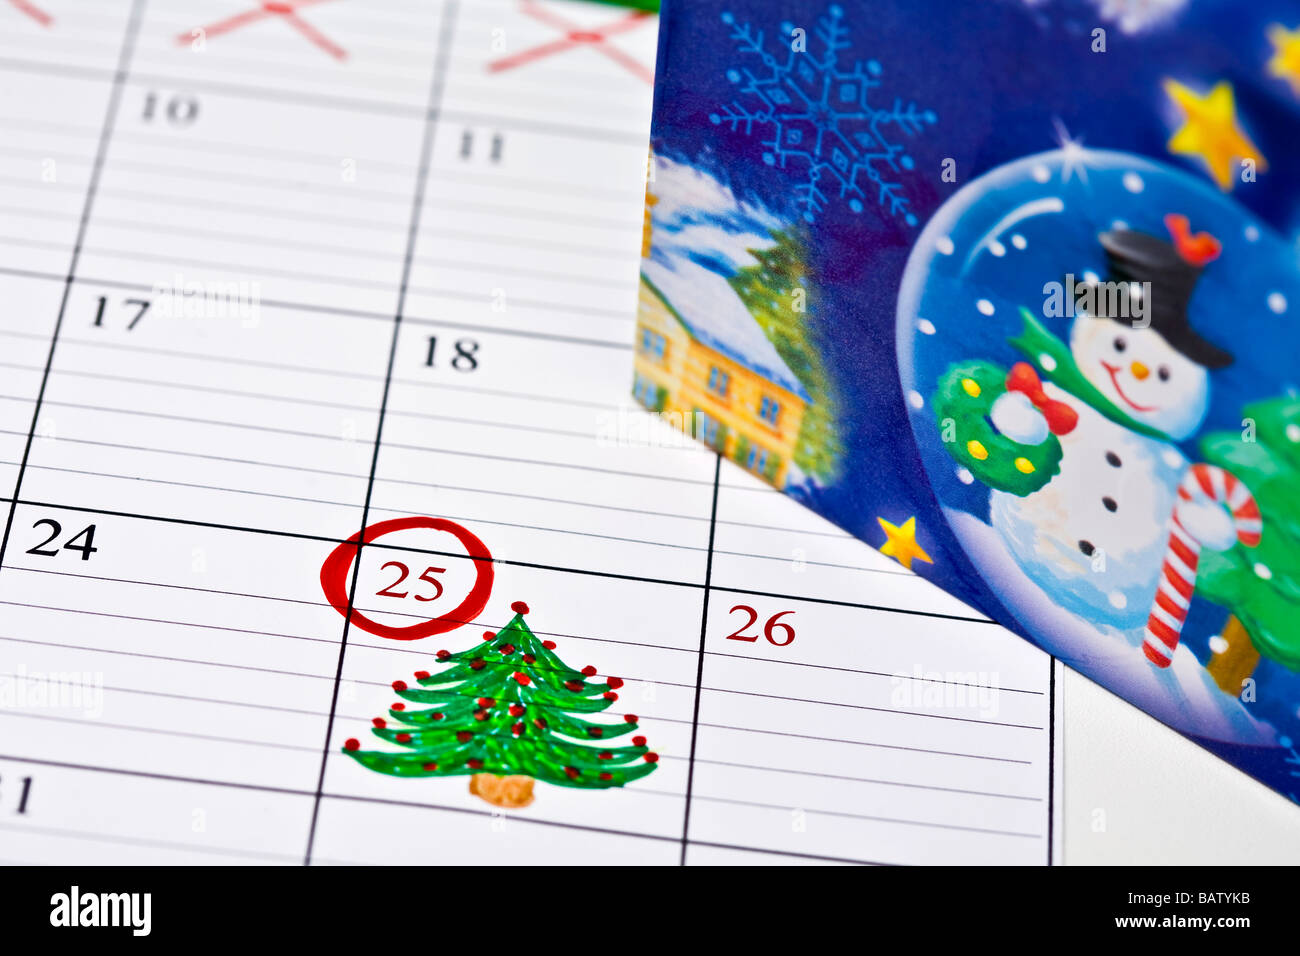 Christmas Day Drawing Images.Calendar With Drawing Of Christmas Tree Marking Christmas